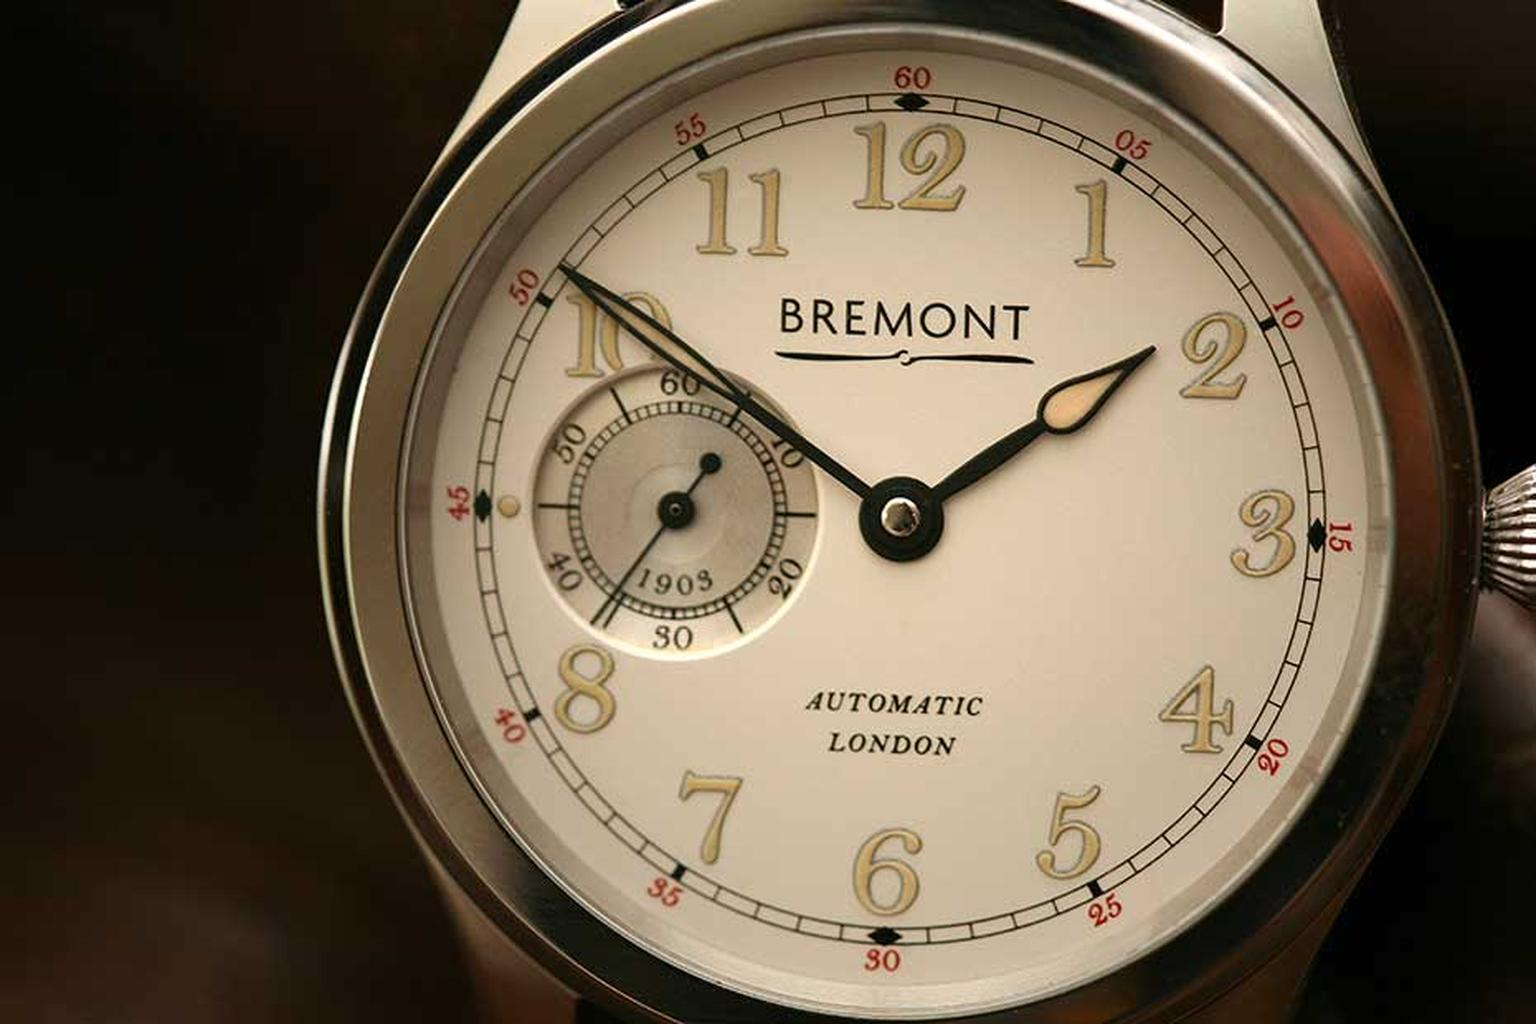 The white gold model of Bremont's new Wright Flyer watch with a white dial, limited to 50 pieces.